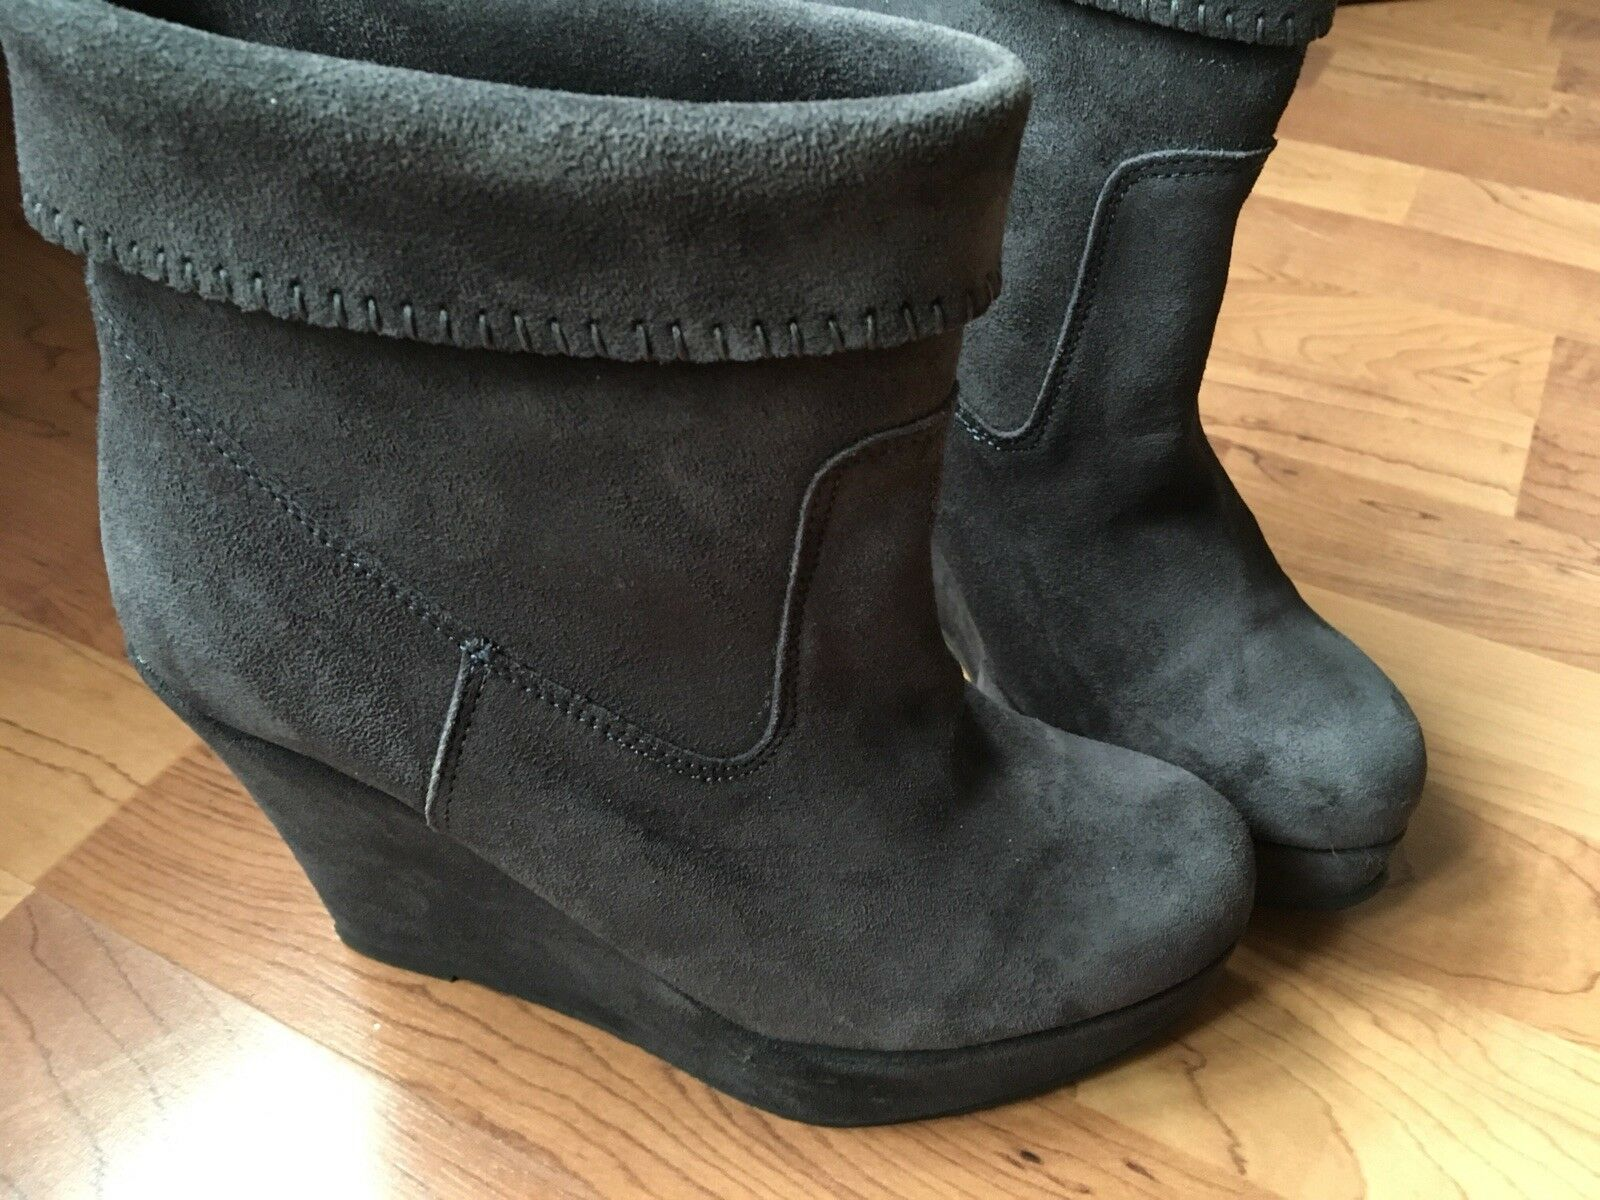 Suede Ankle Boots 4 Size 4 Boots Paolo Simonini d2a44b